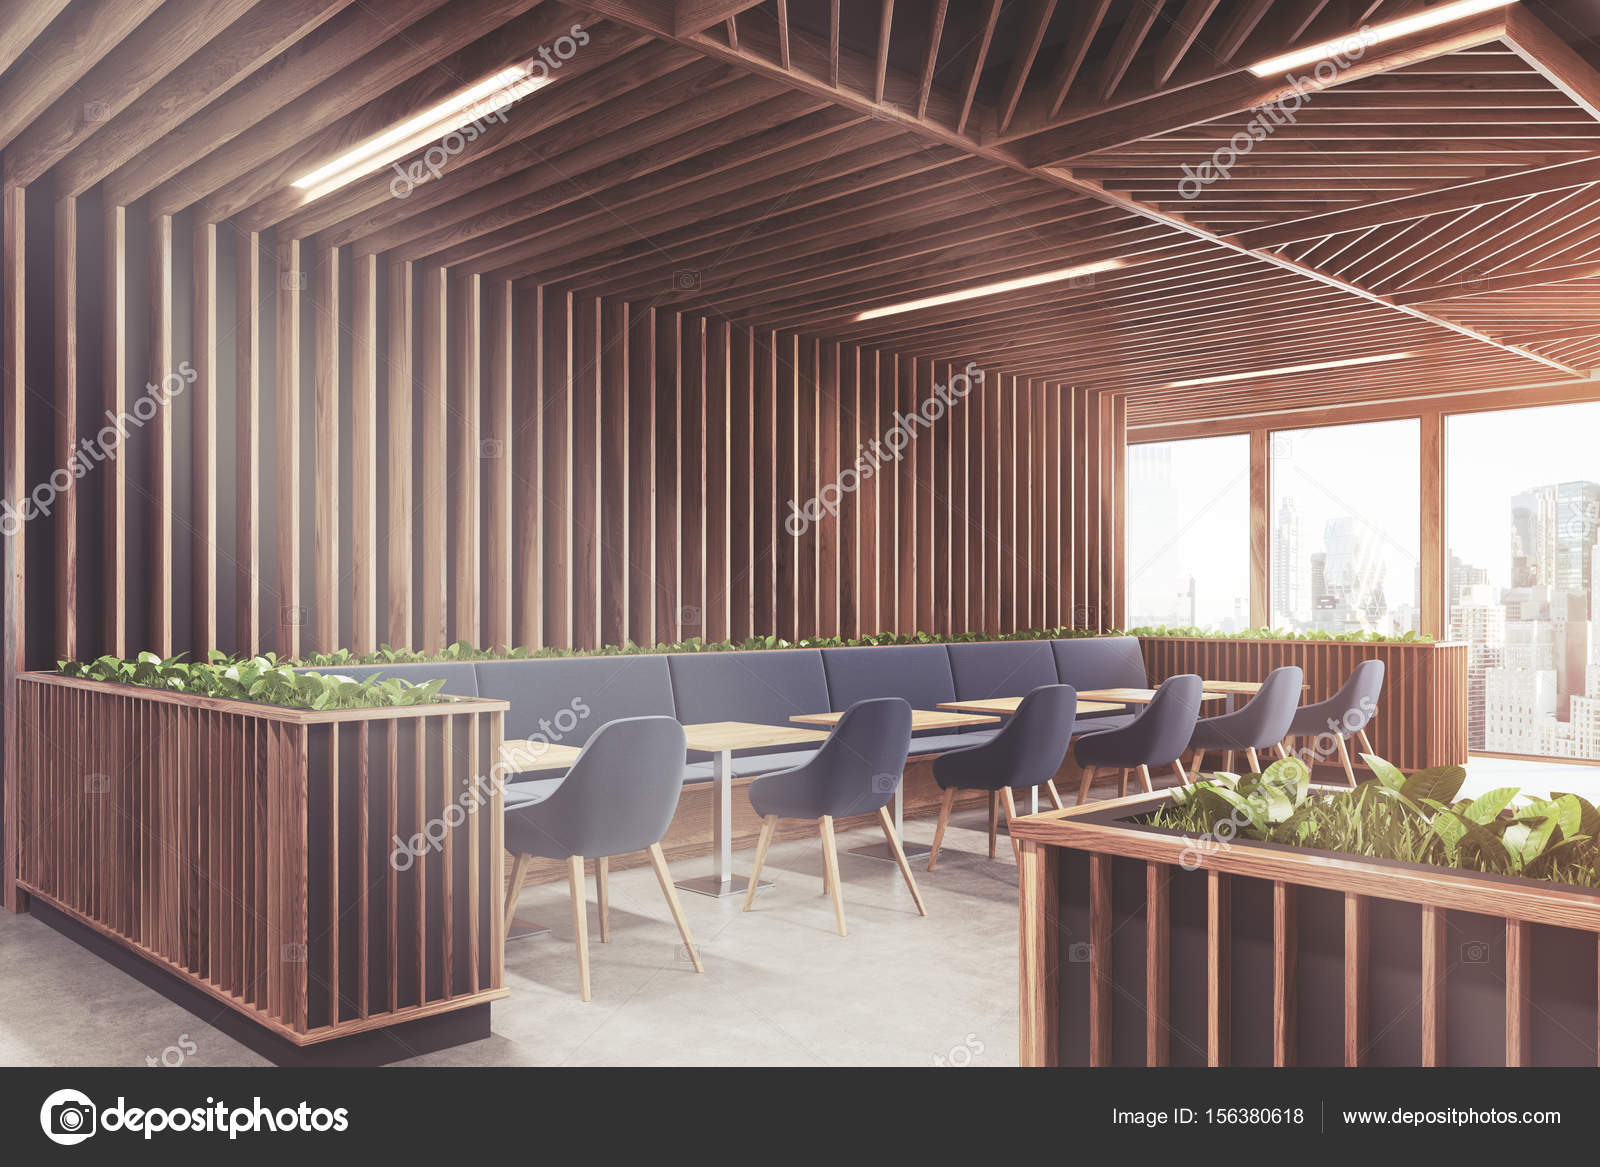 Blue chair cafe wooden interior side toned u2014 Stock Photo & Blue chair cafe wooden interior side toned u2014 Stock Photo ...